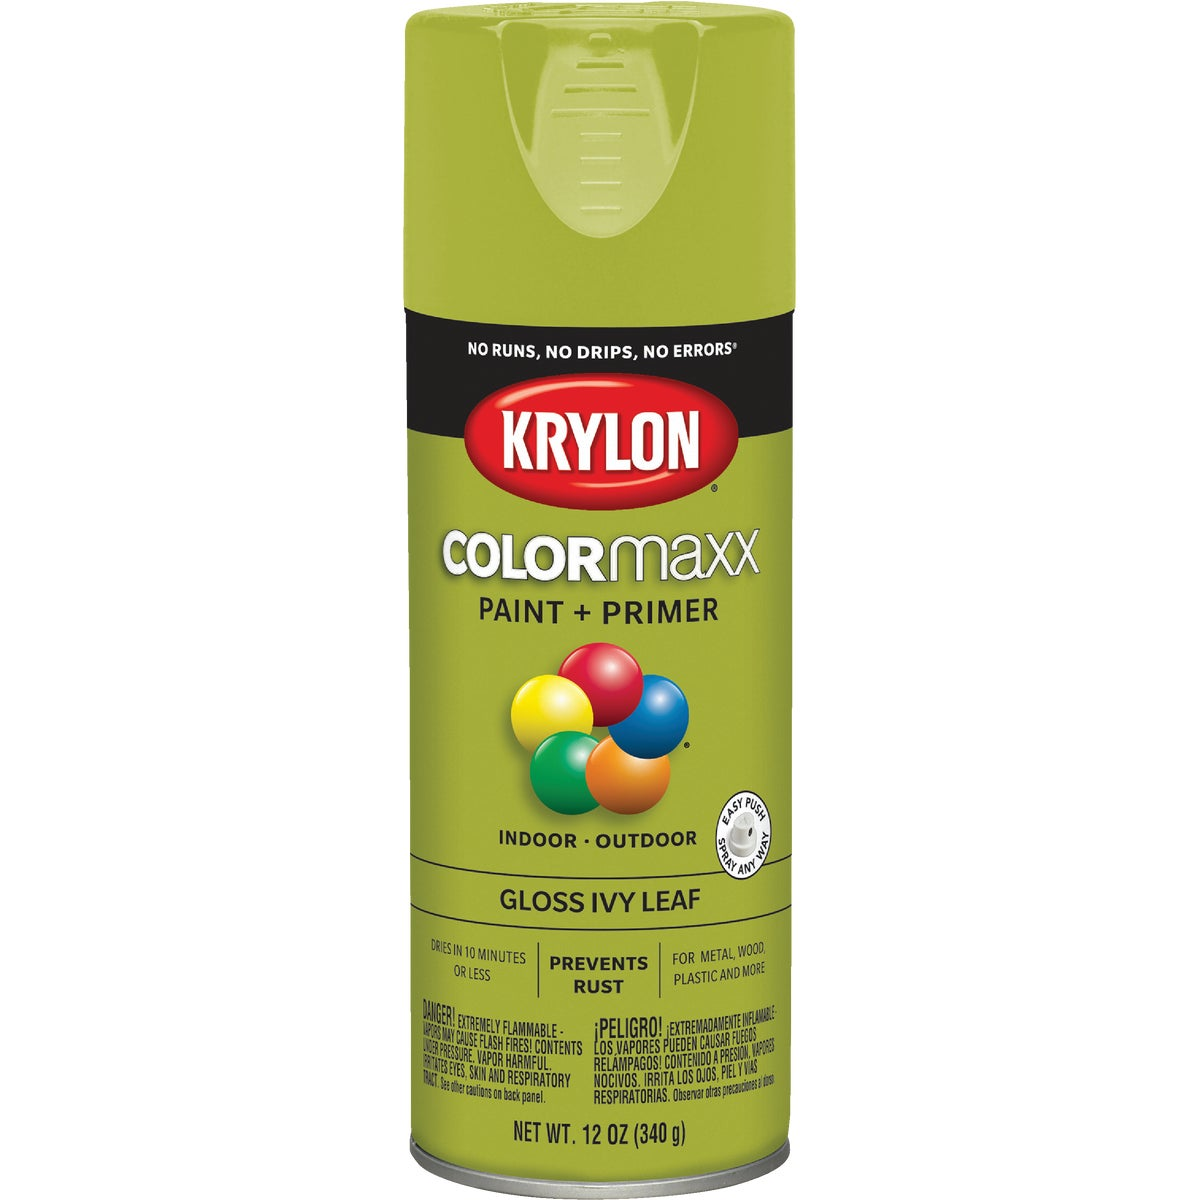 GLS IVY LEAF SPRAY PAINT - 51515 by Krylon/consumer Div